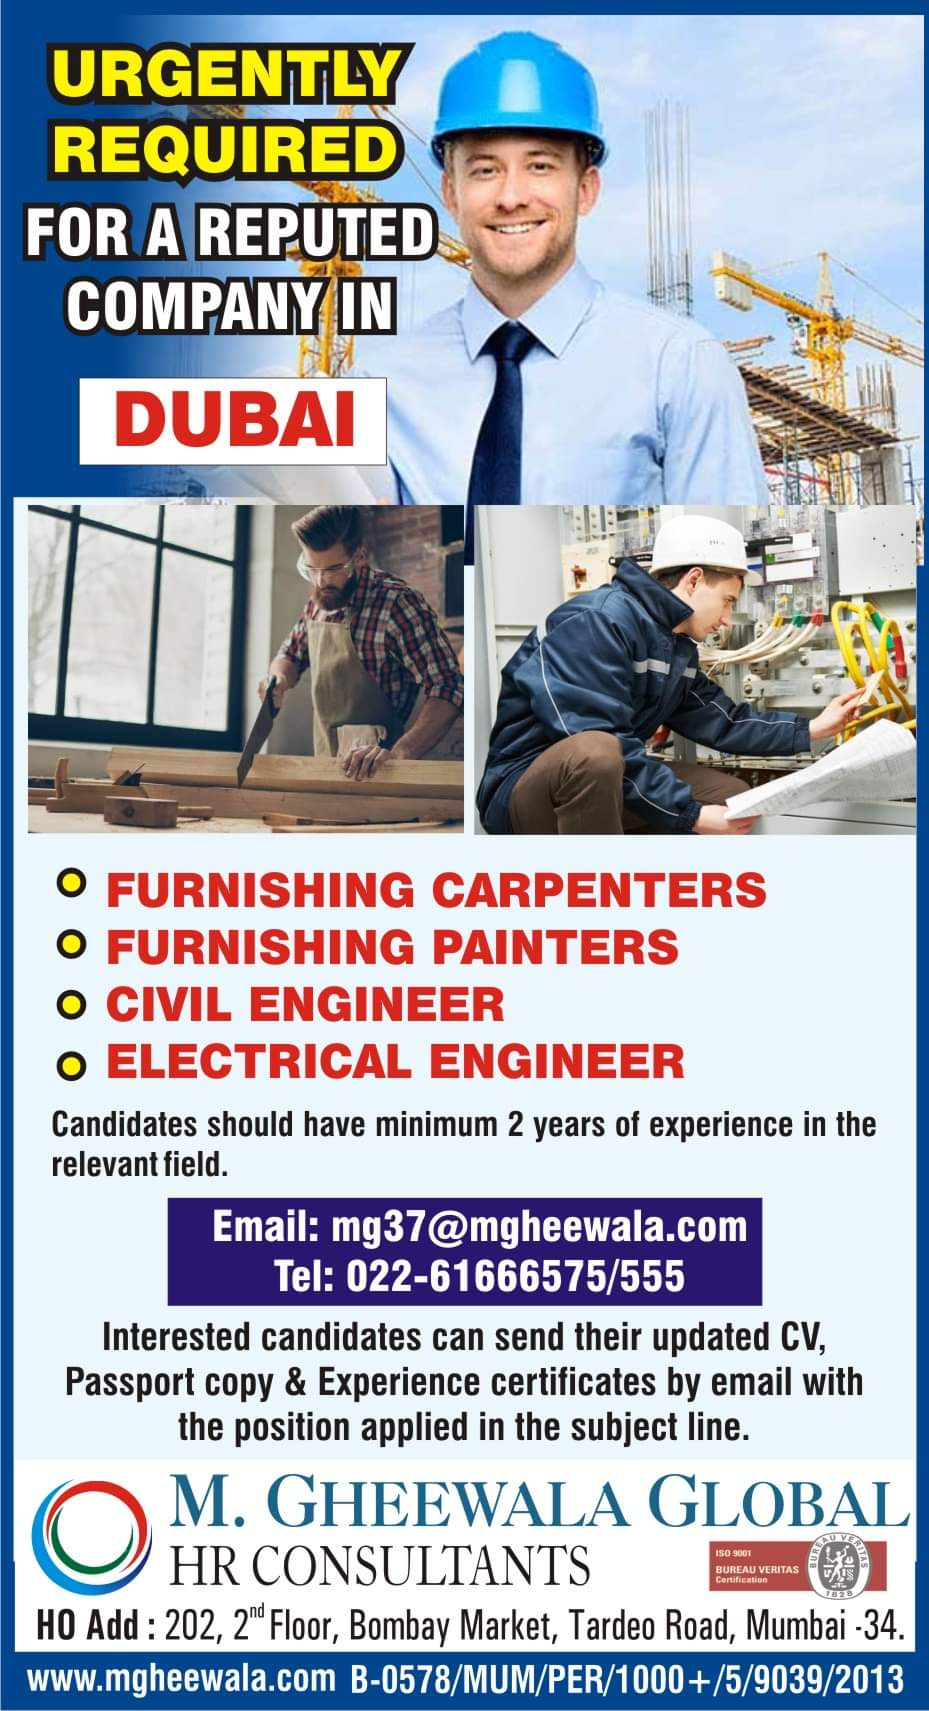 WALK-IN INTERVIEW AT MUMBAI FOR DUBAI REPUTED CO.